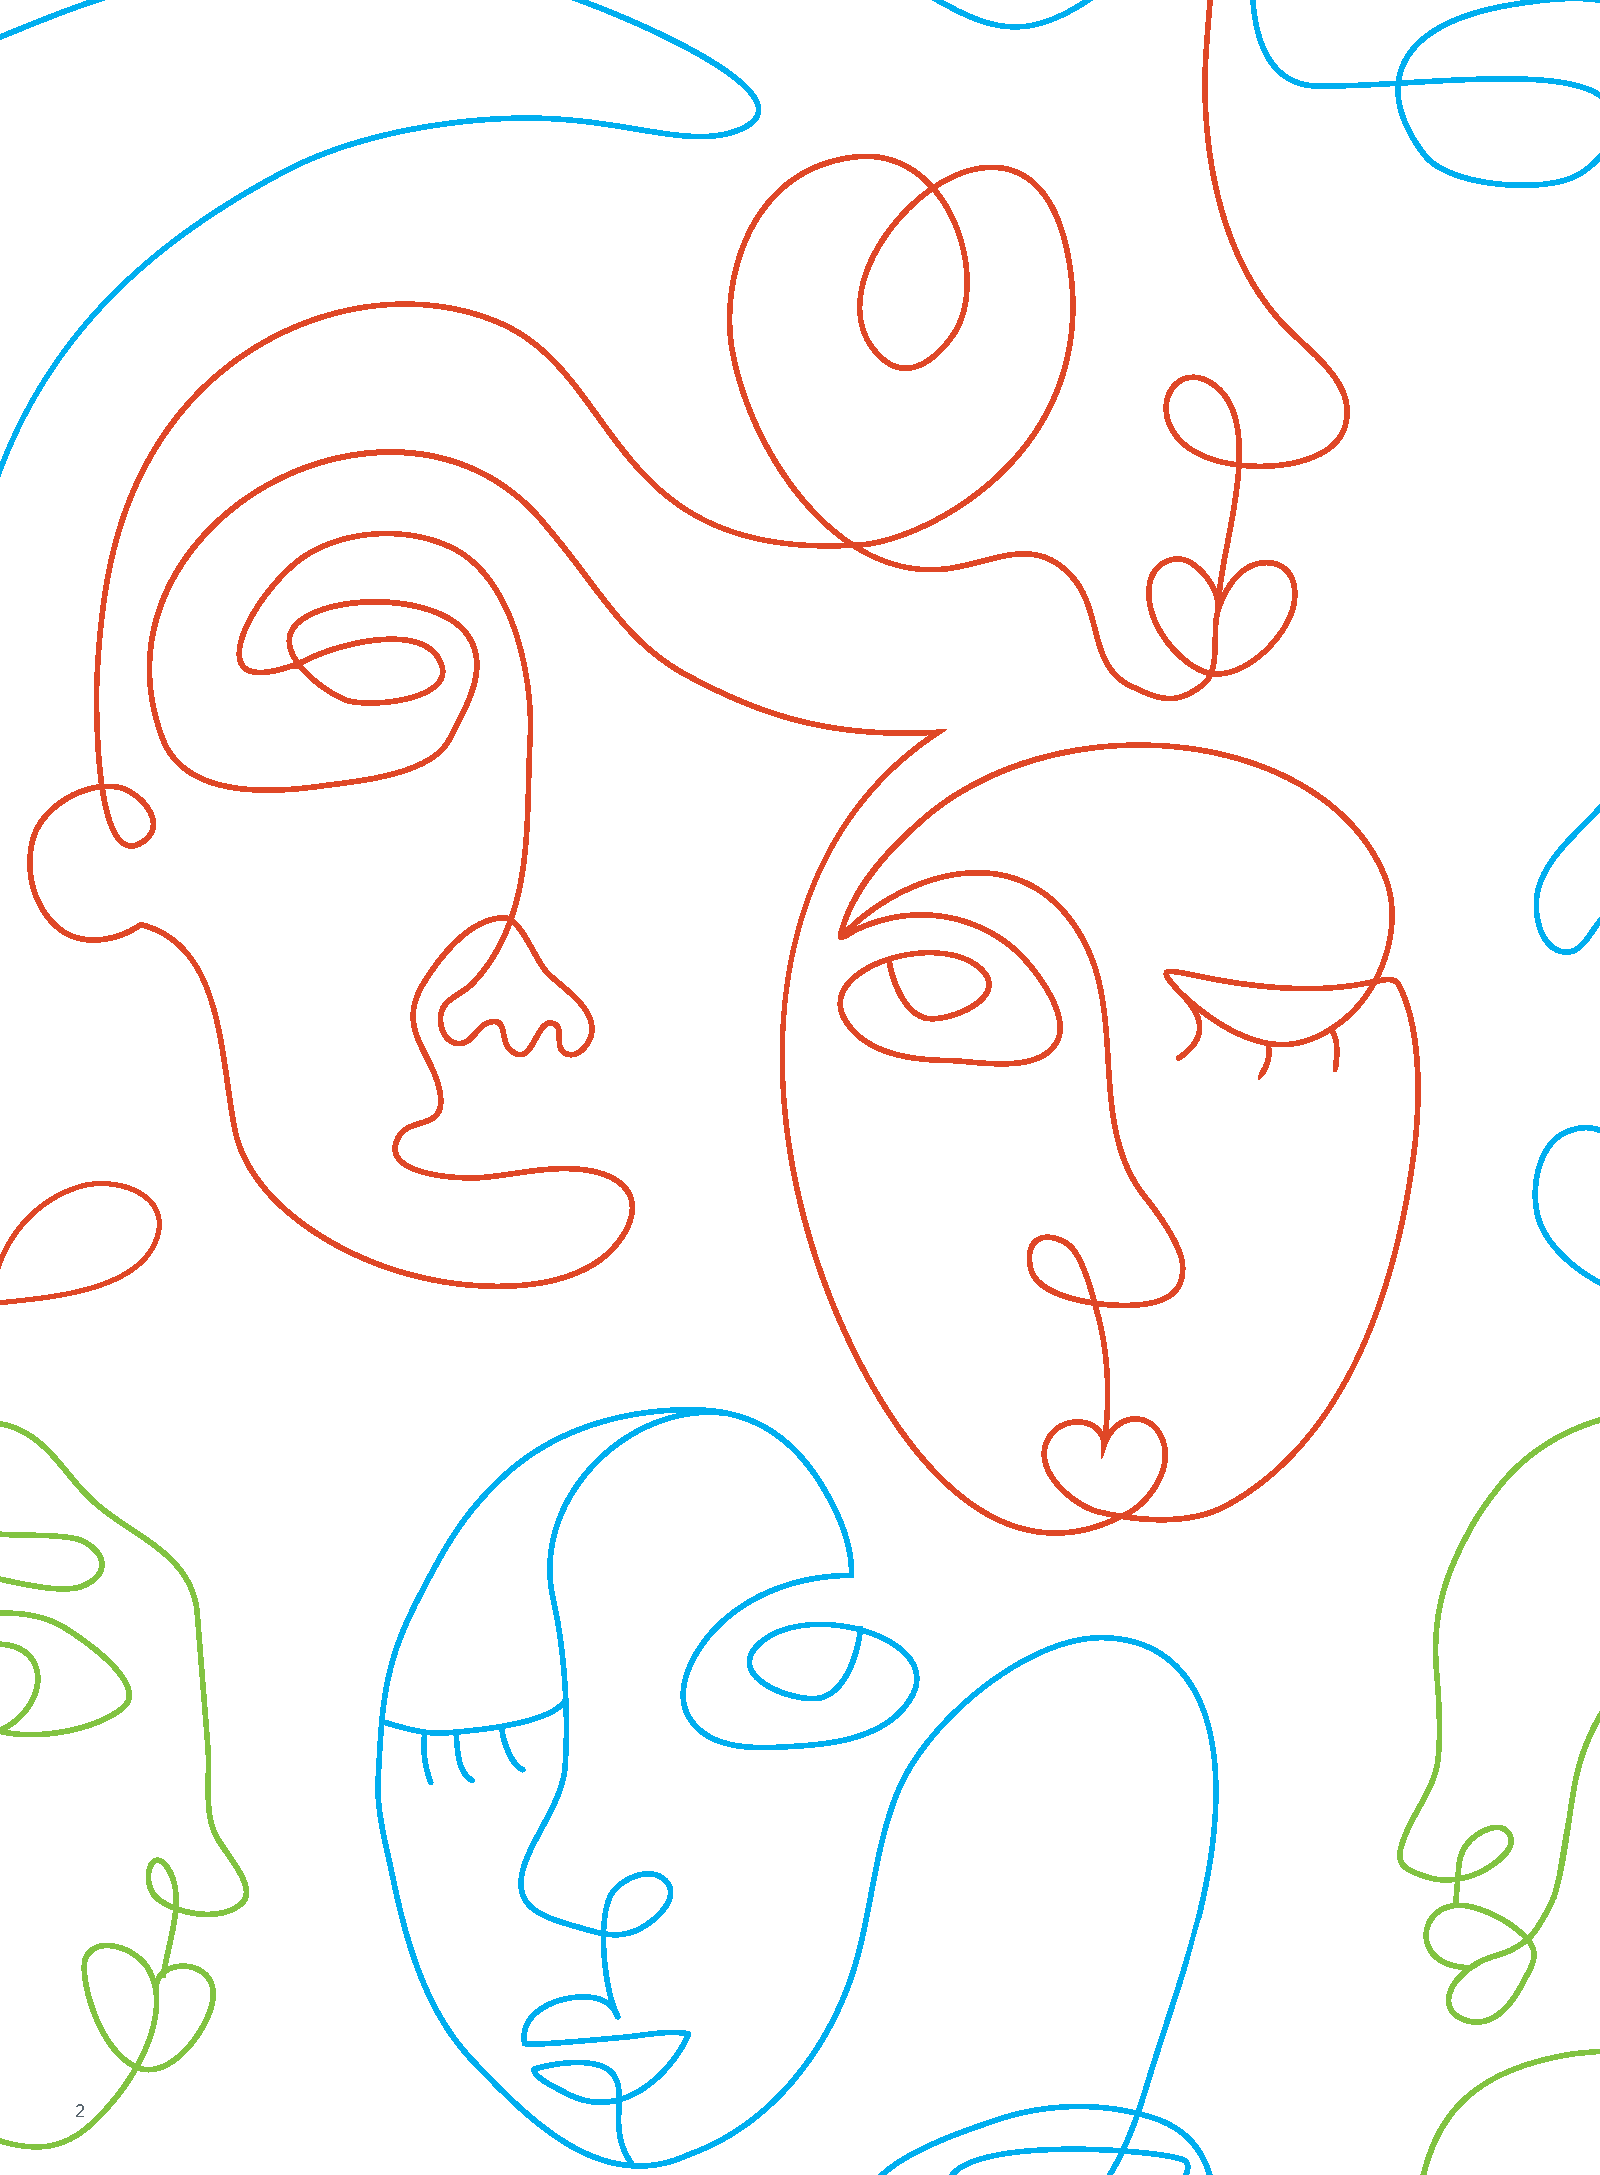 Abstract, continuous line drawings of faces.